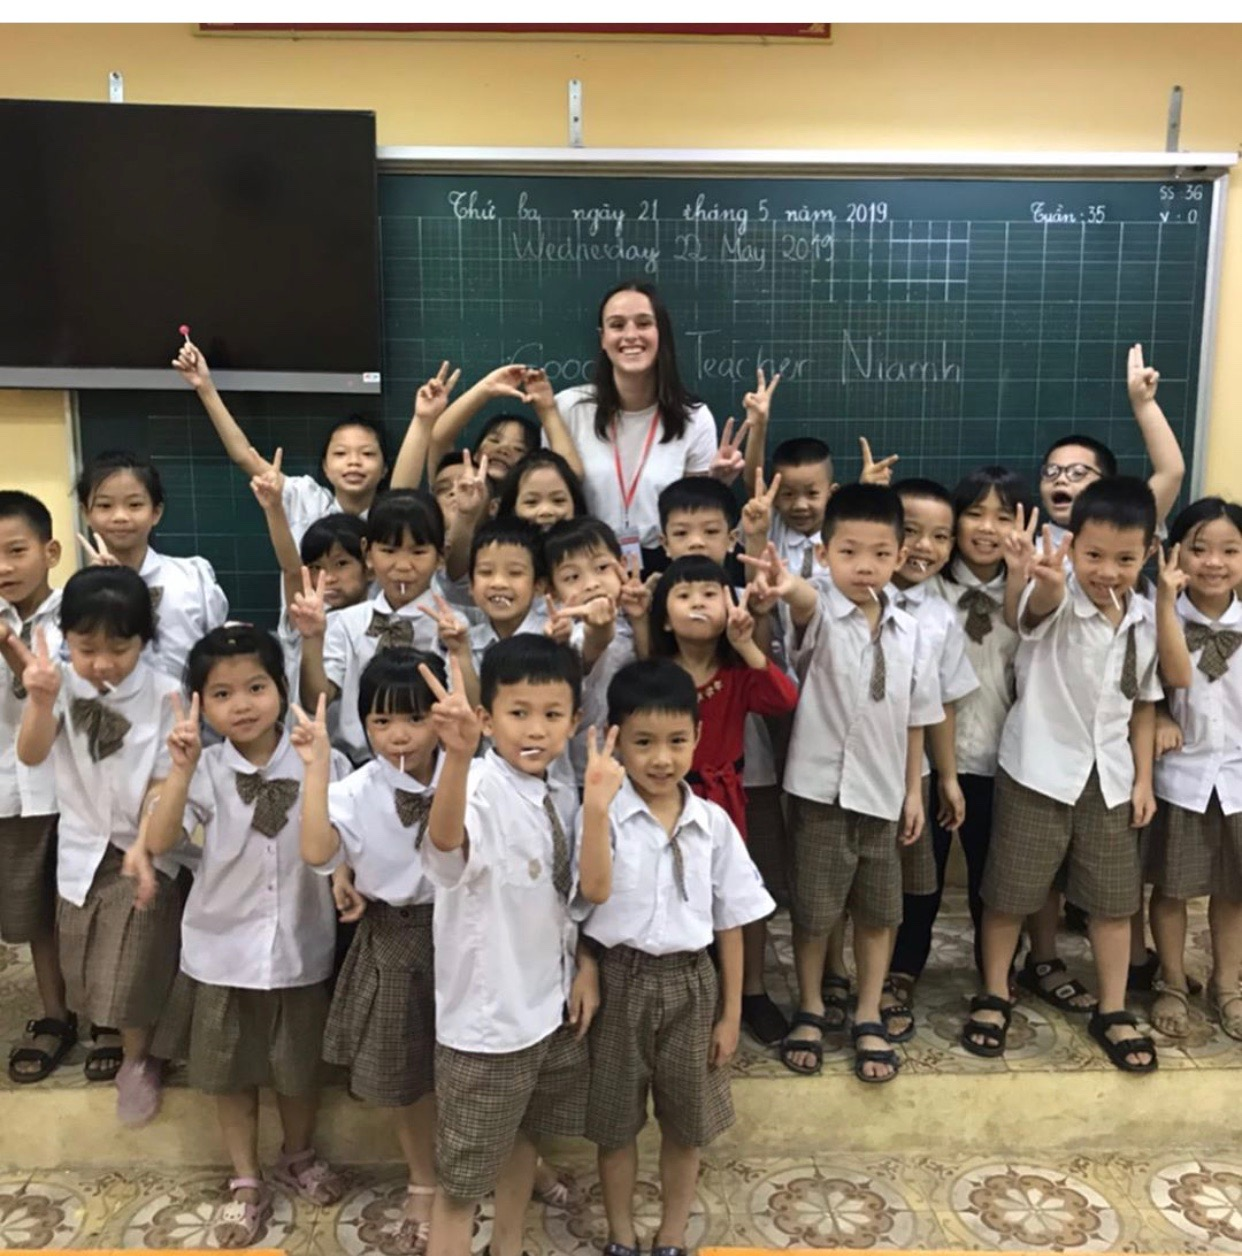 Interview with Niamh in Vietnam